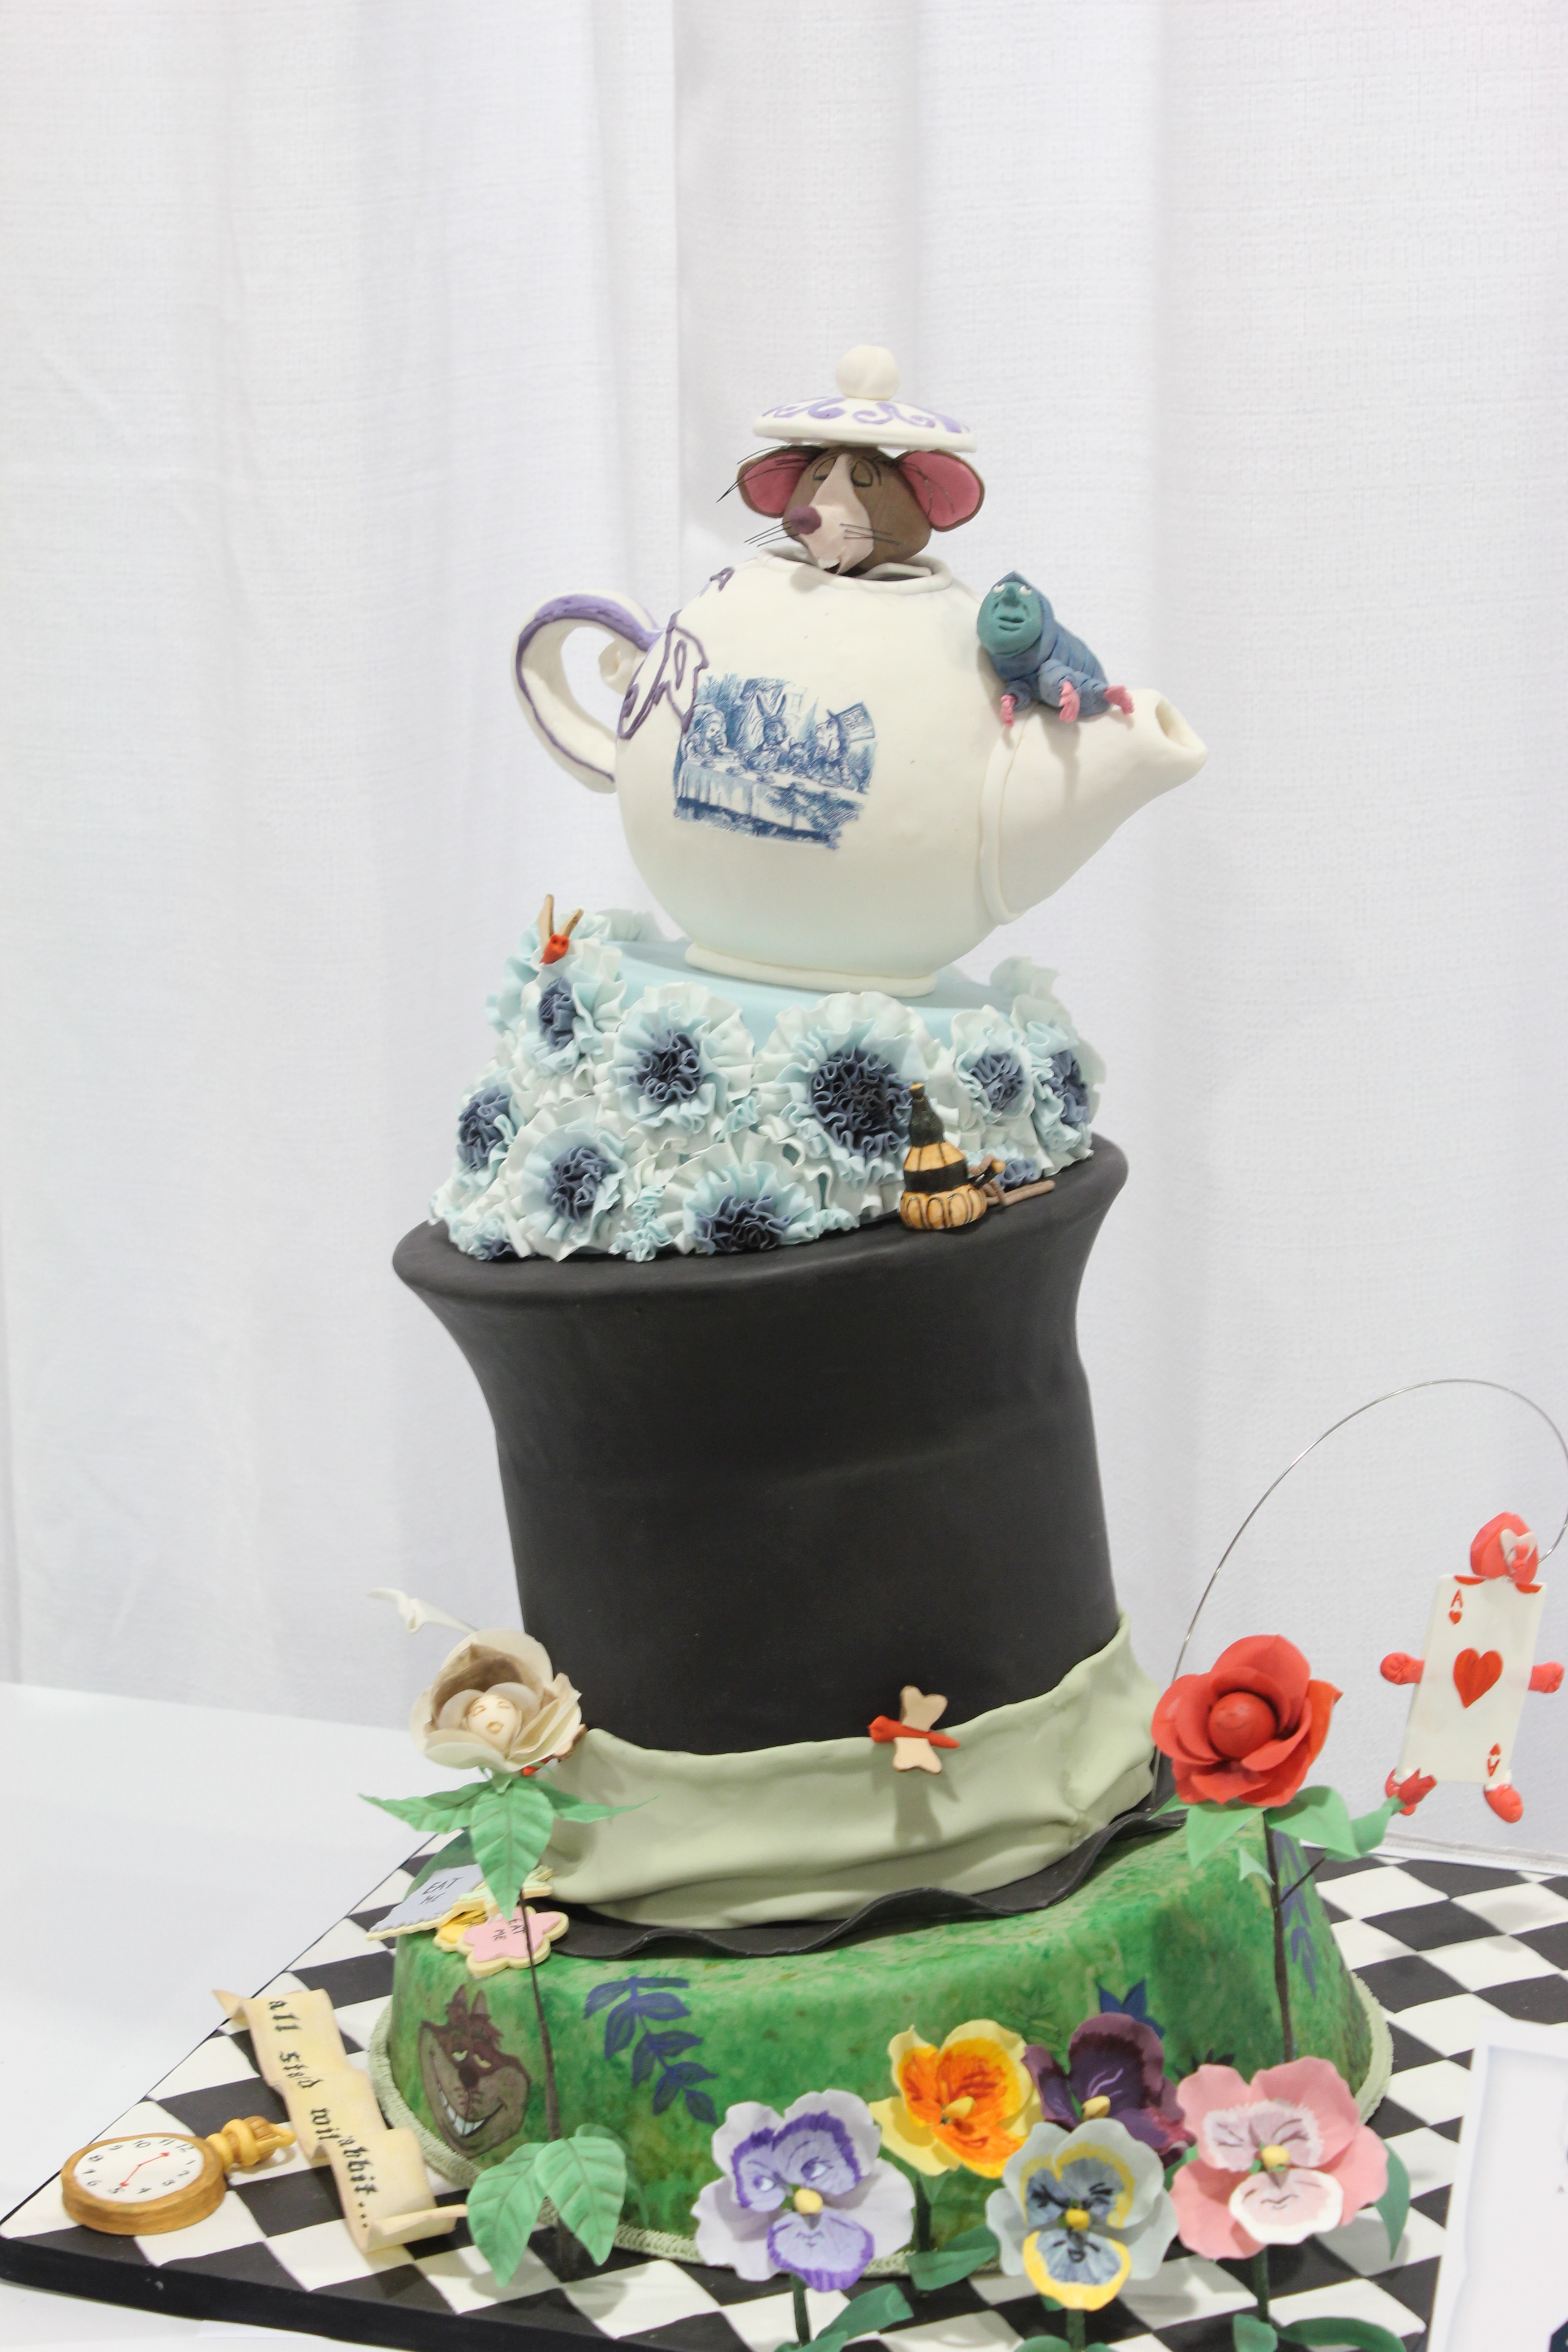 Baking and Sweets Show: Have you been yet? – The Avid Baker